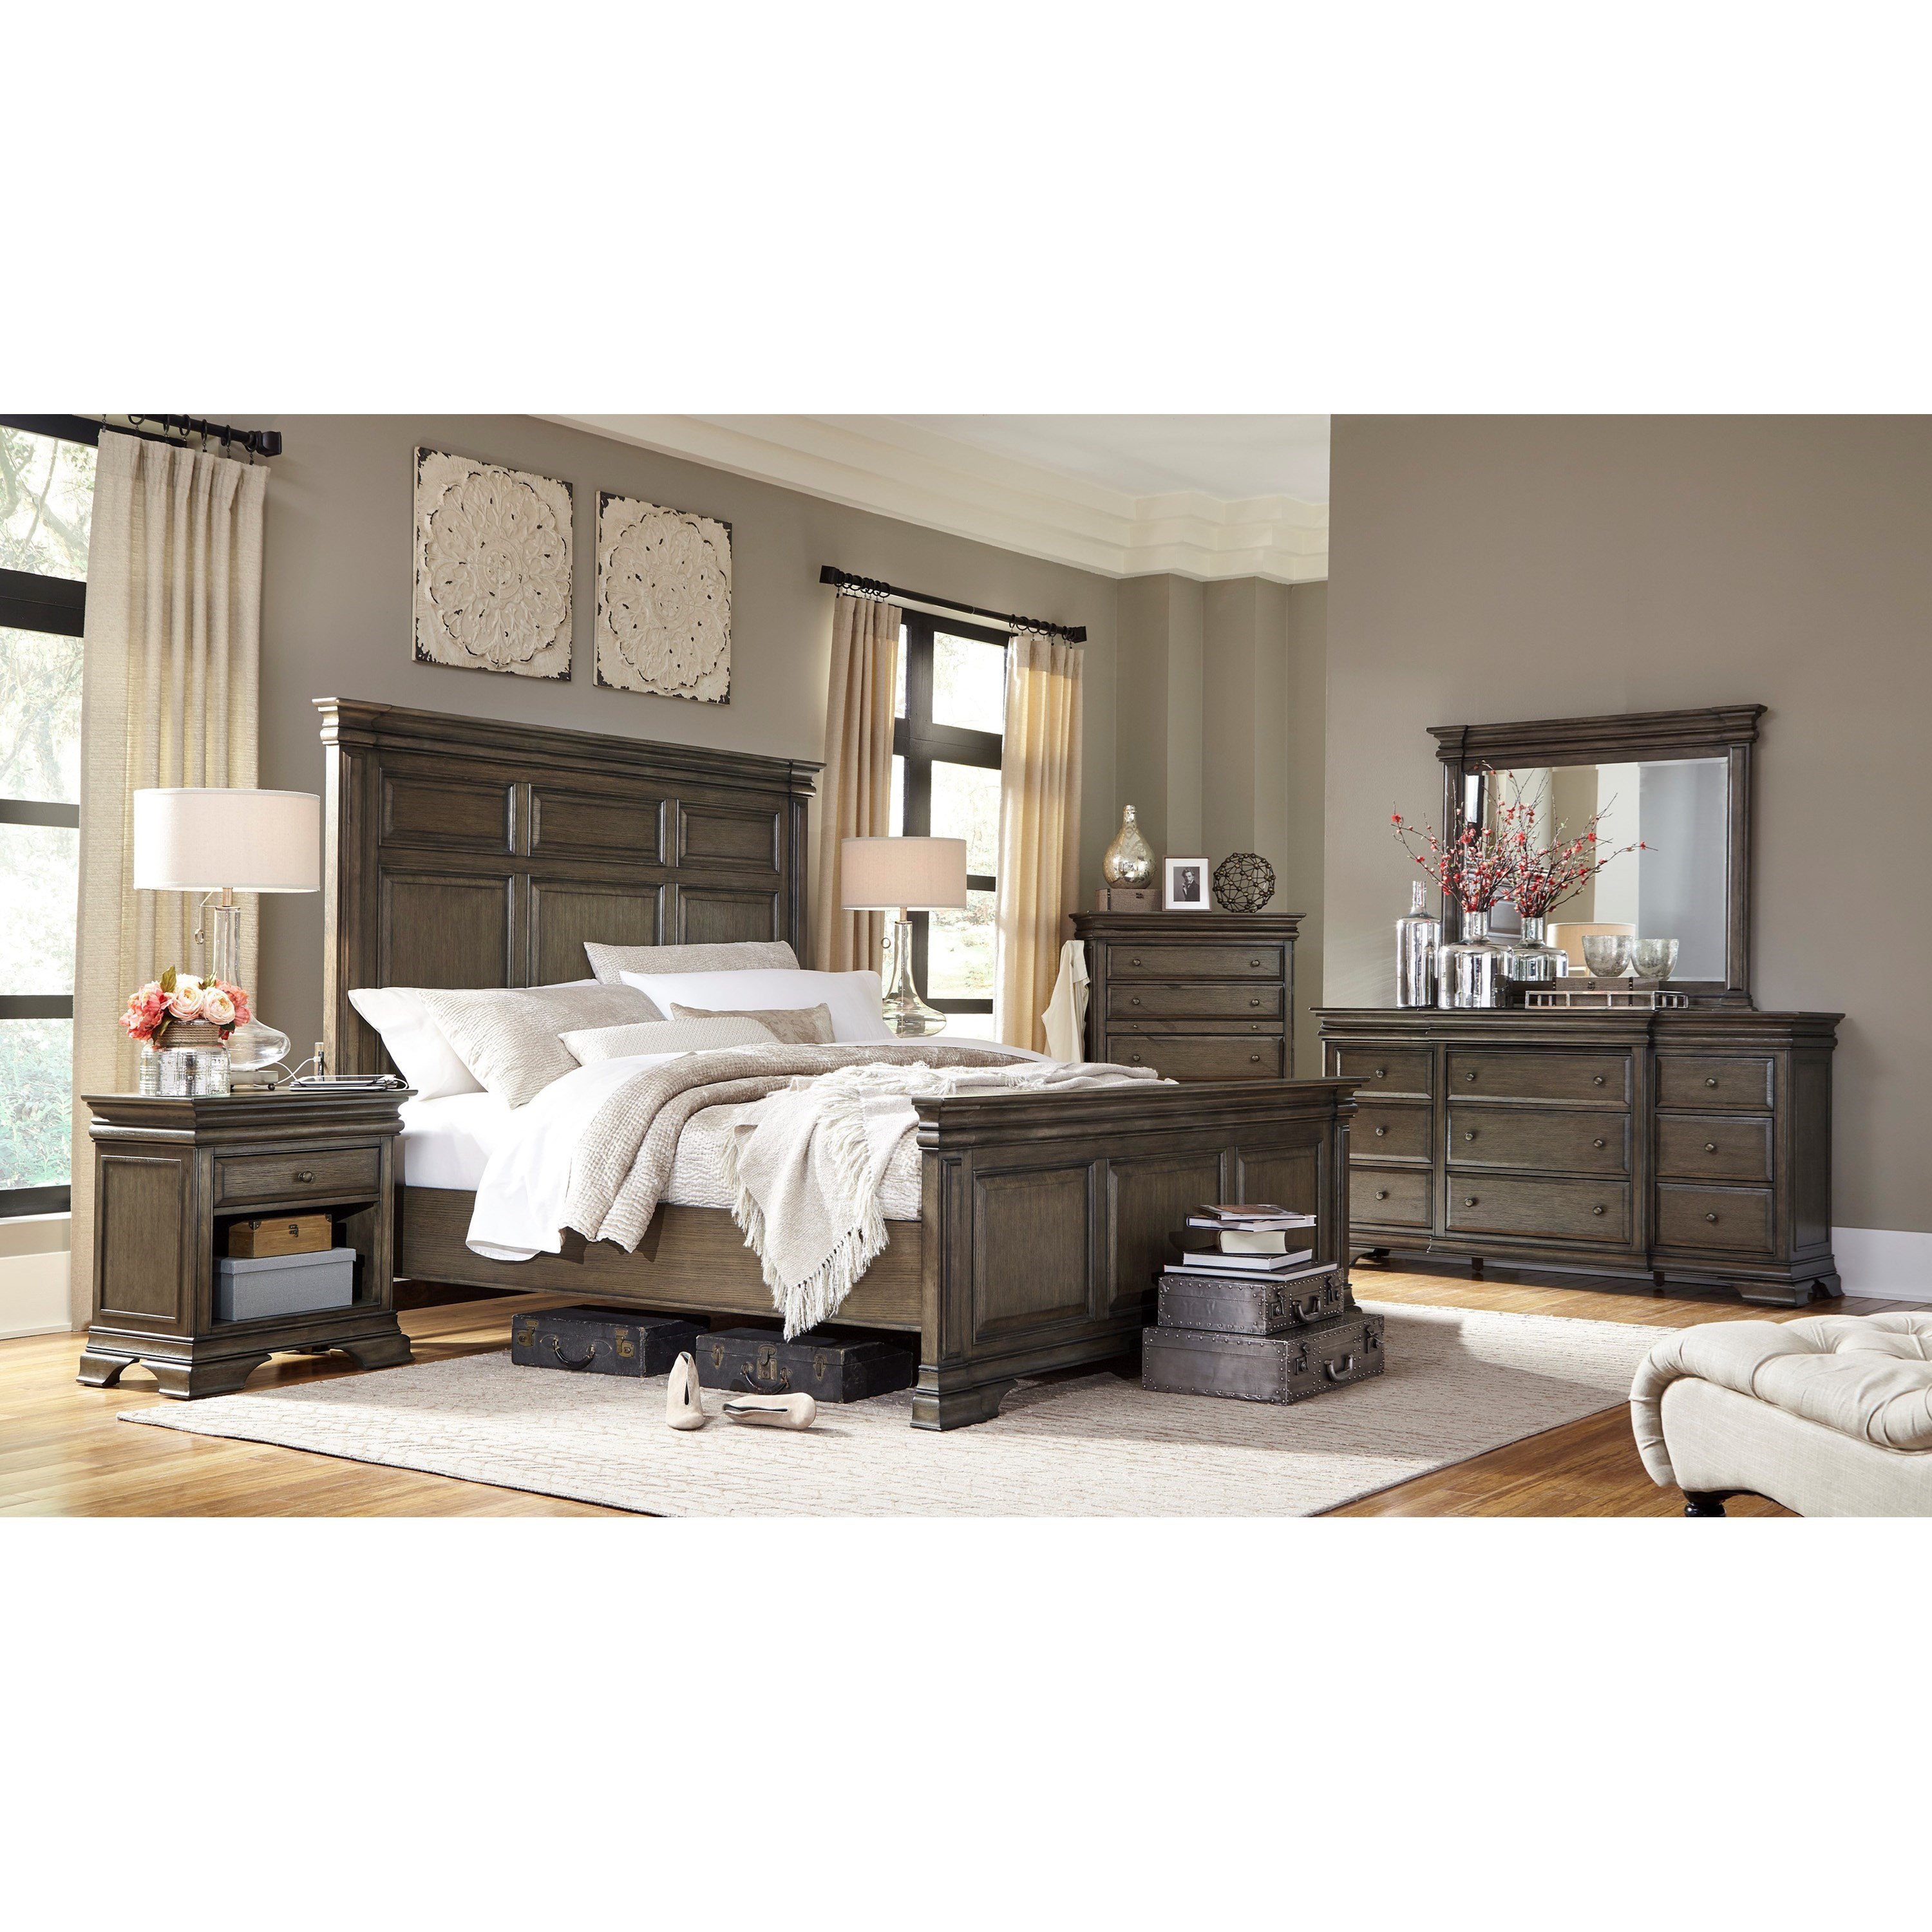 Aspenhome Arcadia Queen Bedroom Group - Item Number: I92 Q Bedroom Group 1